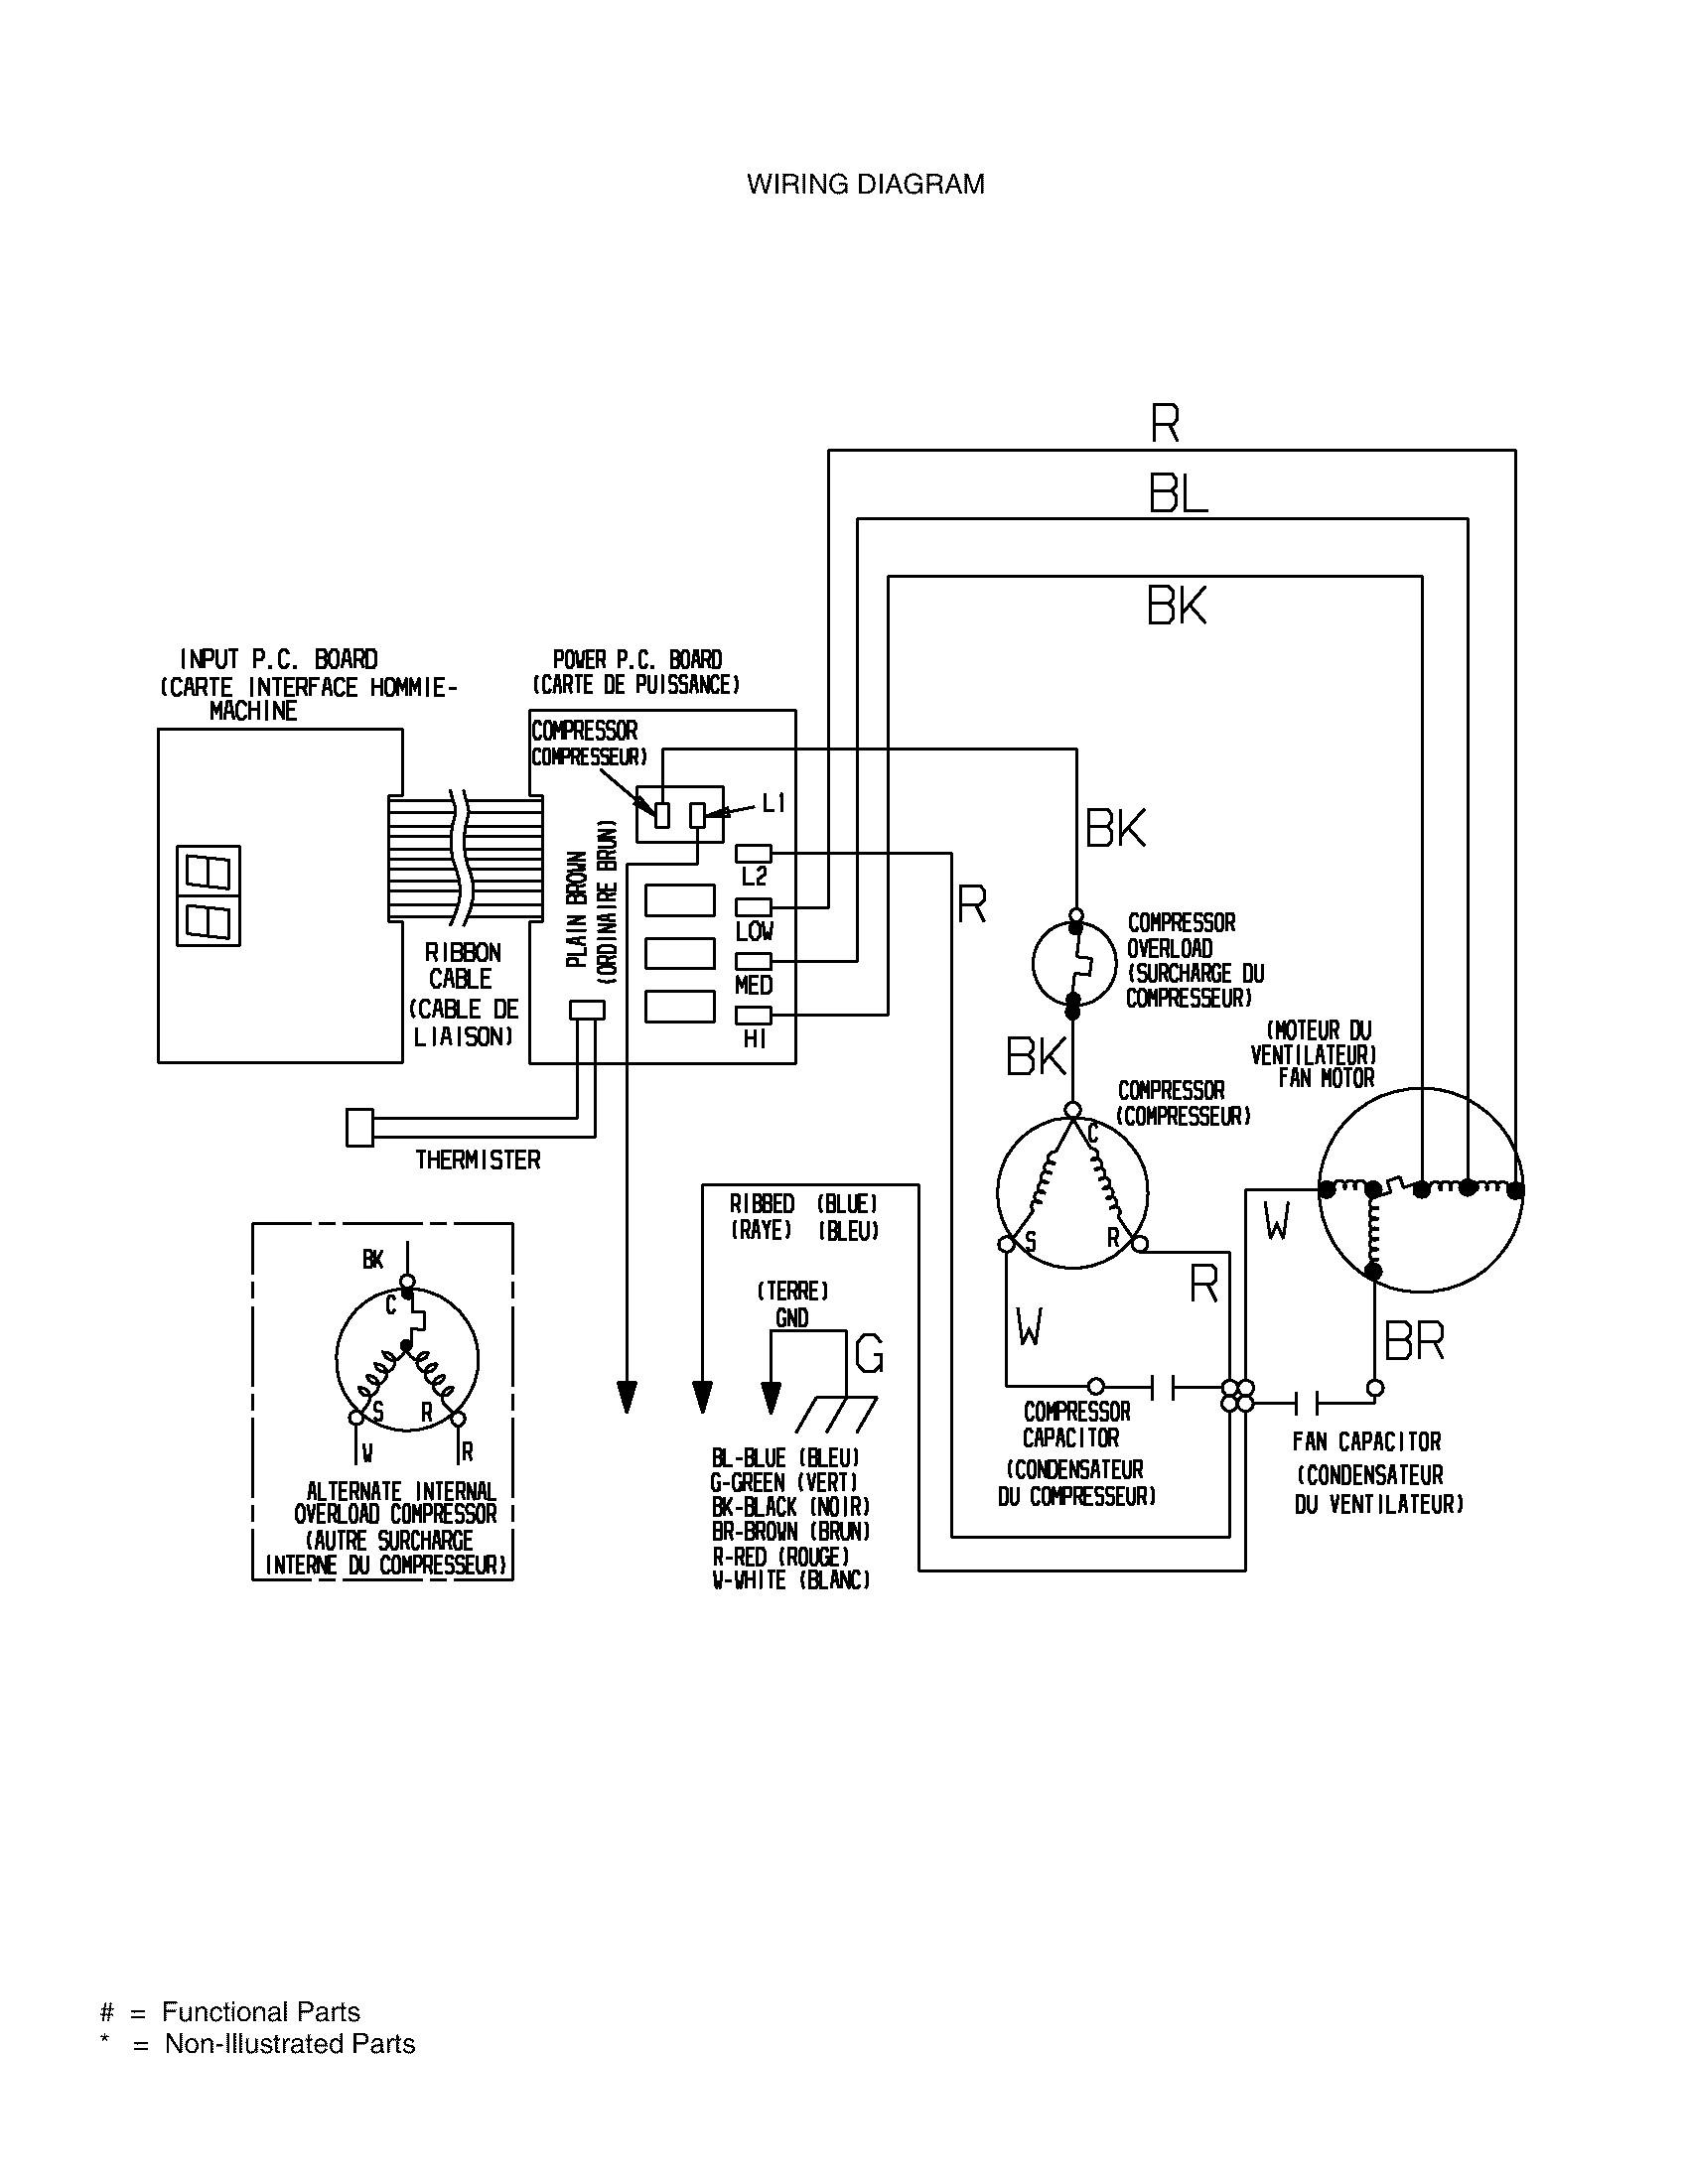 Duo Therm Rv Air Conditioner Wiring Diagram Coleman Rv Air Conditioner Wiring Diagram Wire Diagram Of Duo Therm Rv Air Conditioner Wiring Diagram on Duo Therm Rv Air Conditioner Wiring Diagram